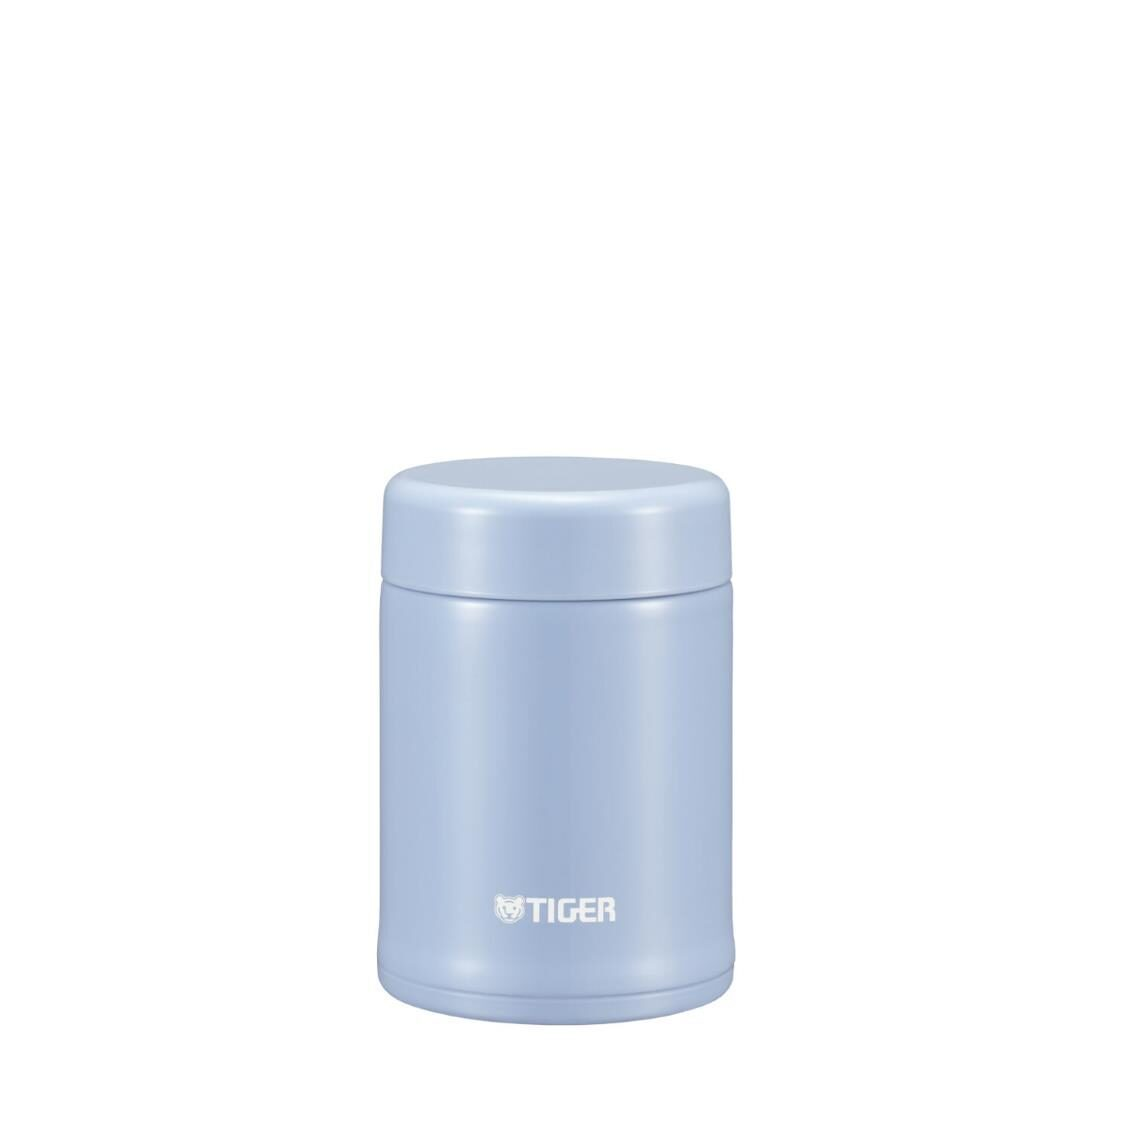 Tiger 250ml Double Stainless Steel Soup Porridge Cup Saxe Blue MCA-C025AS